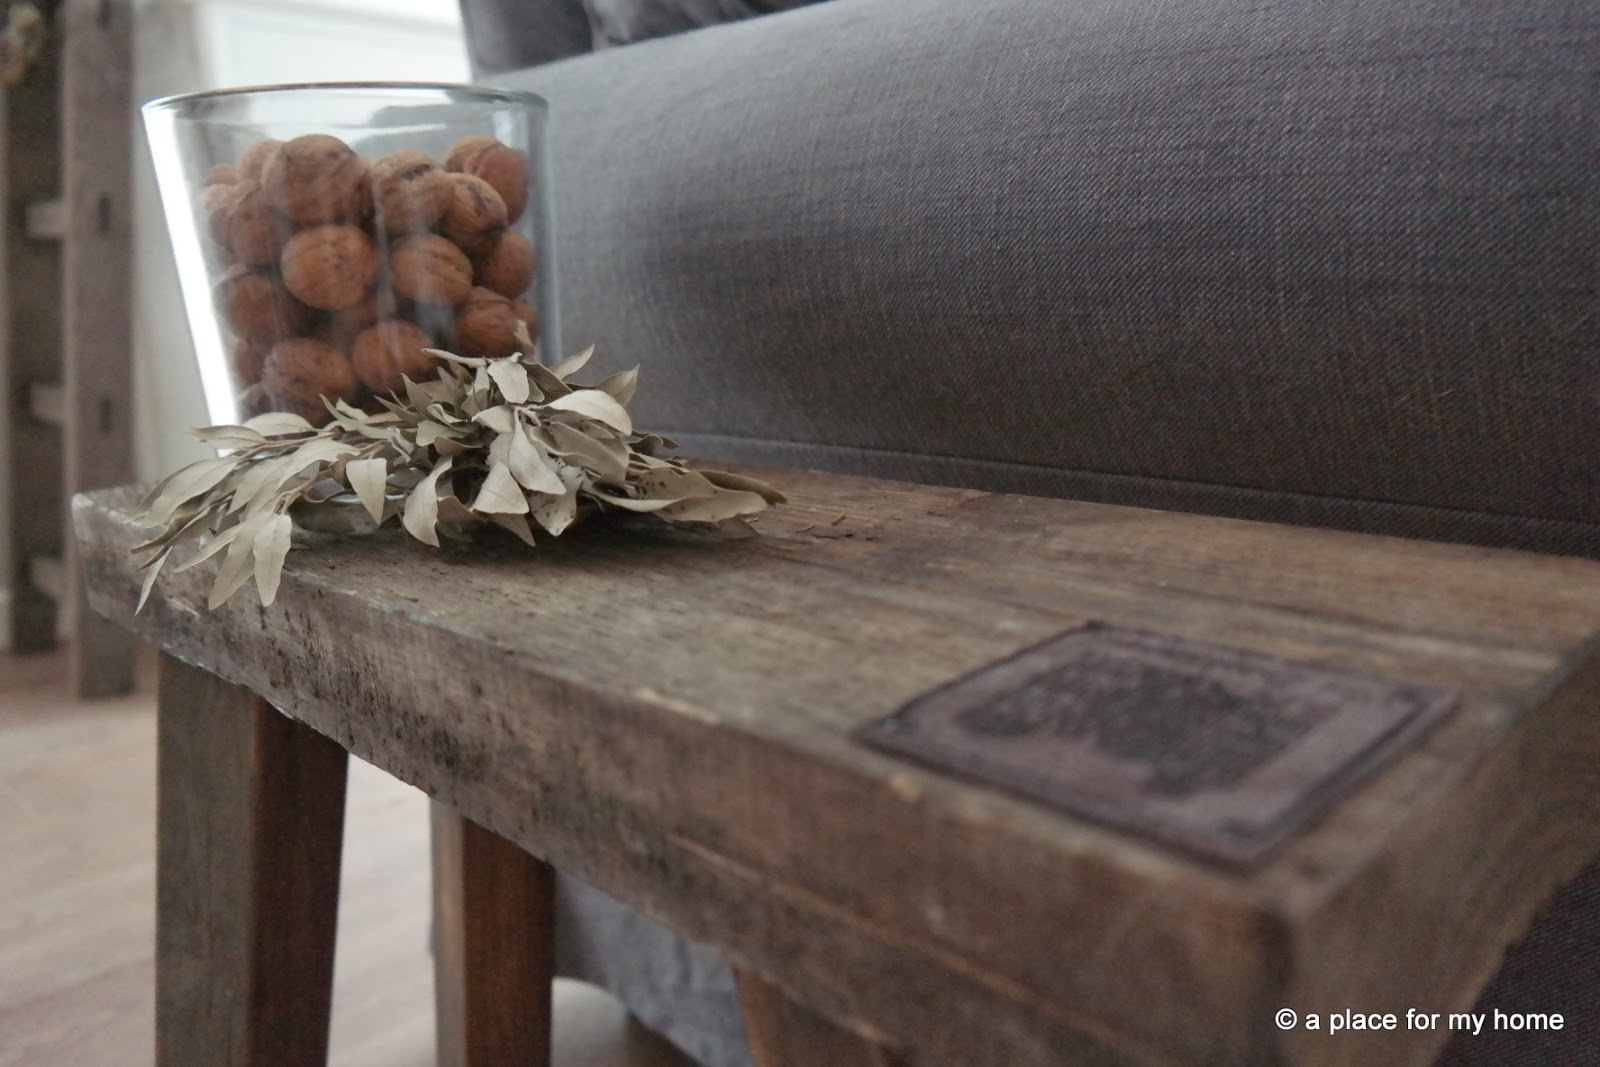 A place for my home: oktober 2013